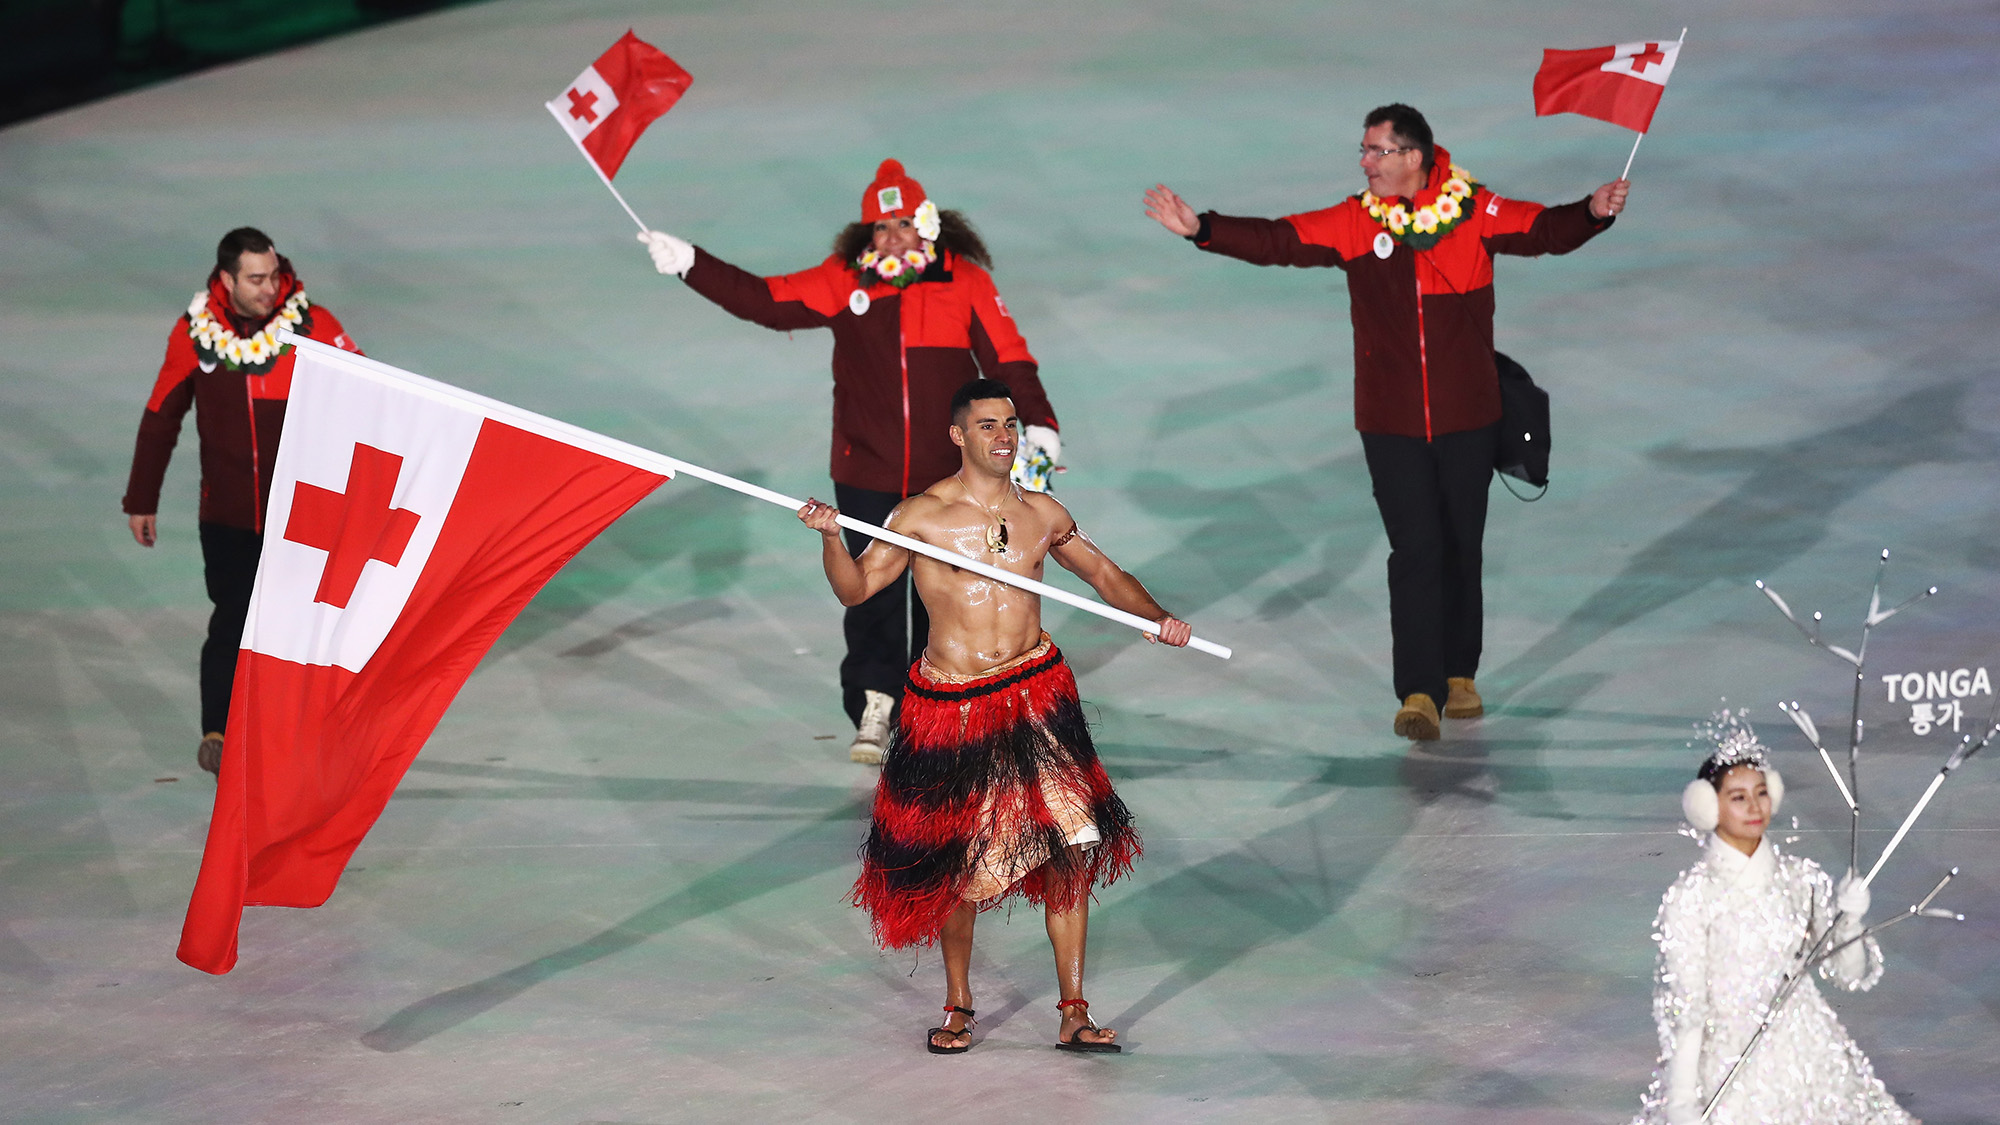 Tonga's shirtless flag bearer returns in PyeongChang